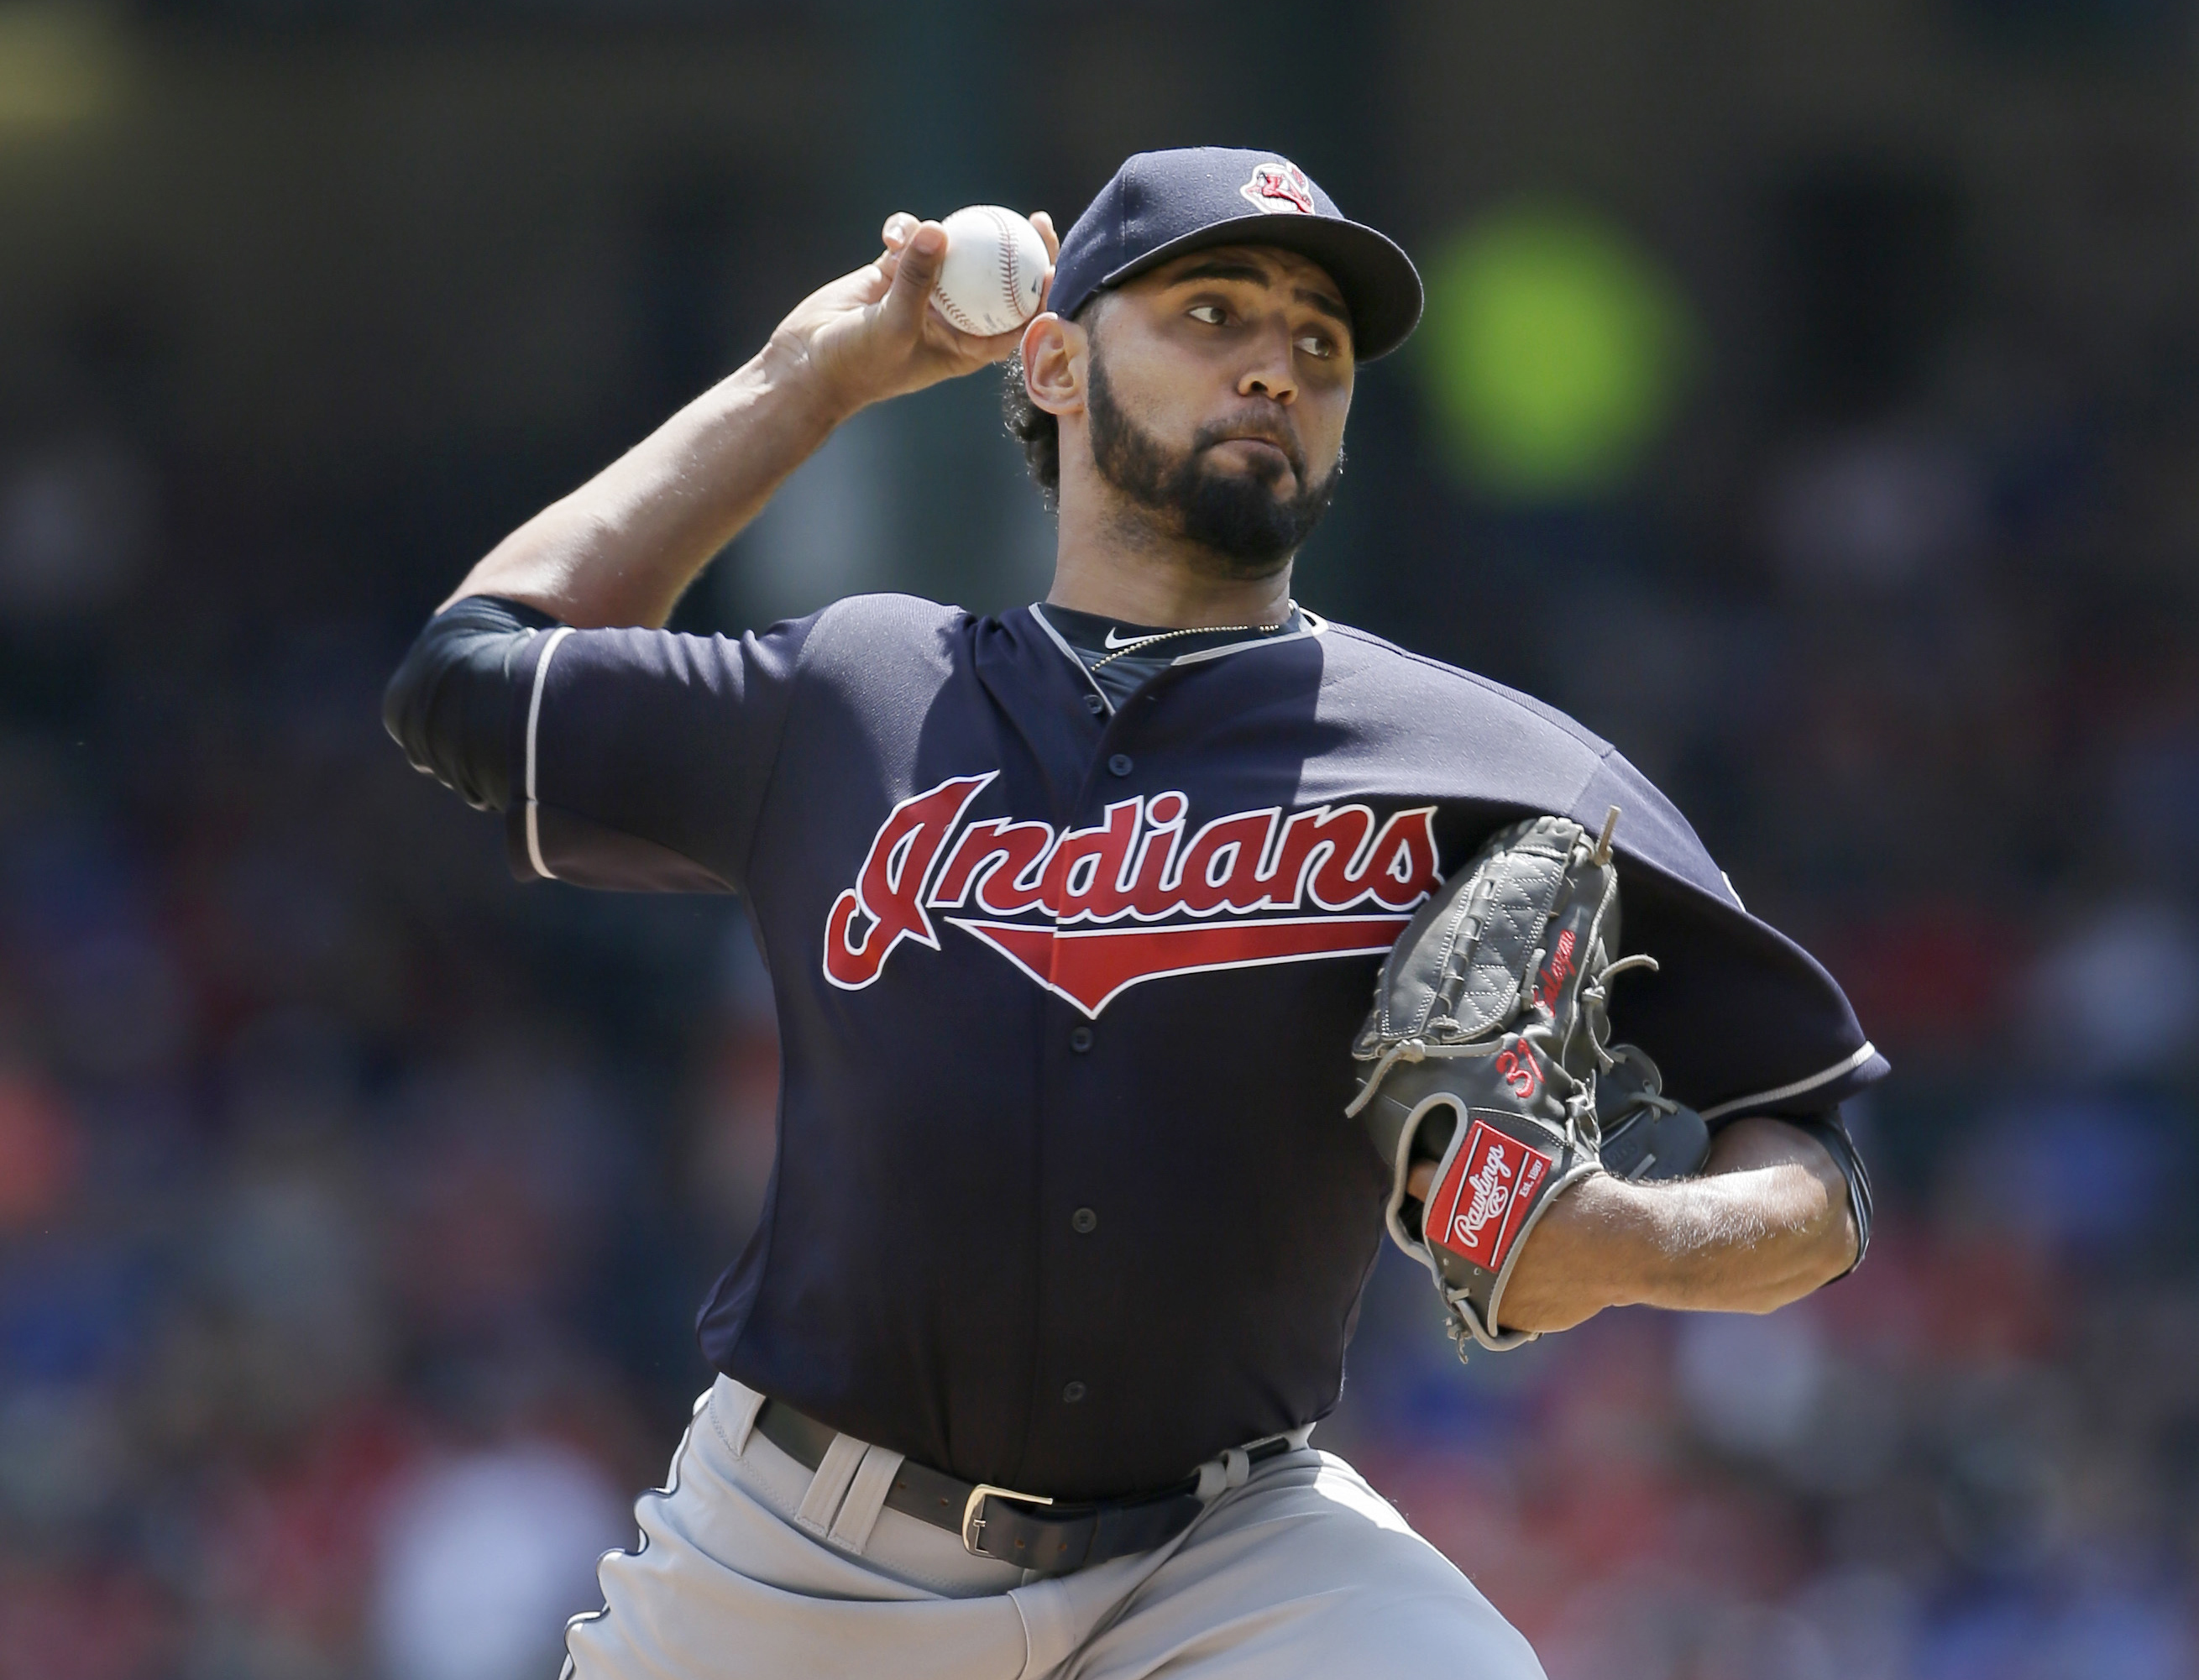 FILE - In this Aug. 28, 2016, file photo, Cleveland Indians starting pitcher Danny Salazar throws during the team's baseball game against the Texas Rangers in Arlington, Texas. Salazar, who hasnt pitched since Sept. 9 because of tightness in his right for